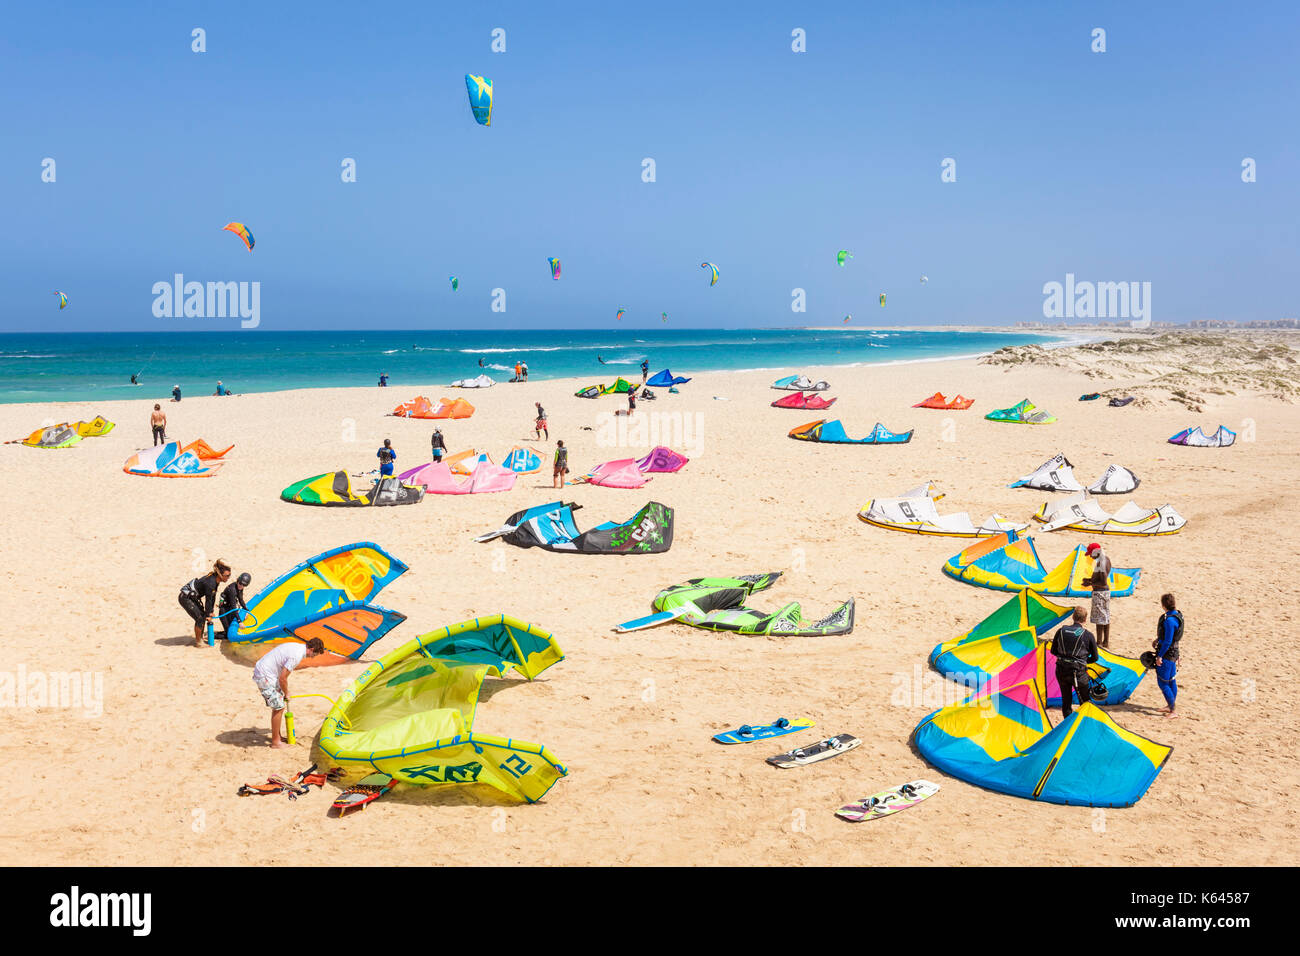 CAPE VERDE SAL Kite surfers and Kite surfing on Kite beach, Praia da Fragata, Costa da Fragata, Santa Maria, Sal, Cape Verde, Africa - Stock Image